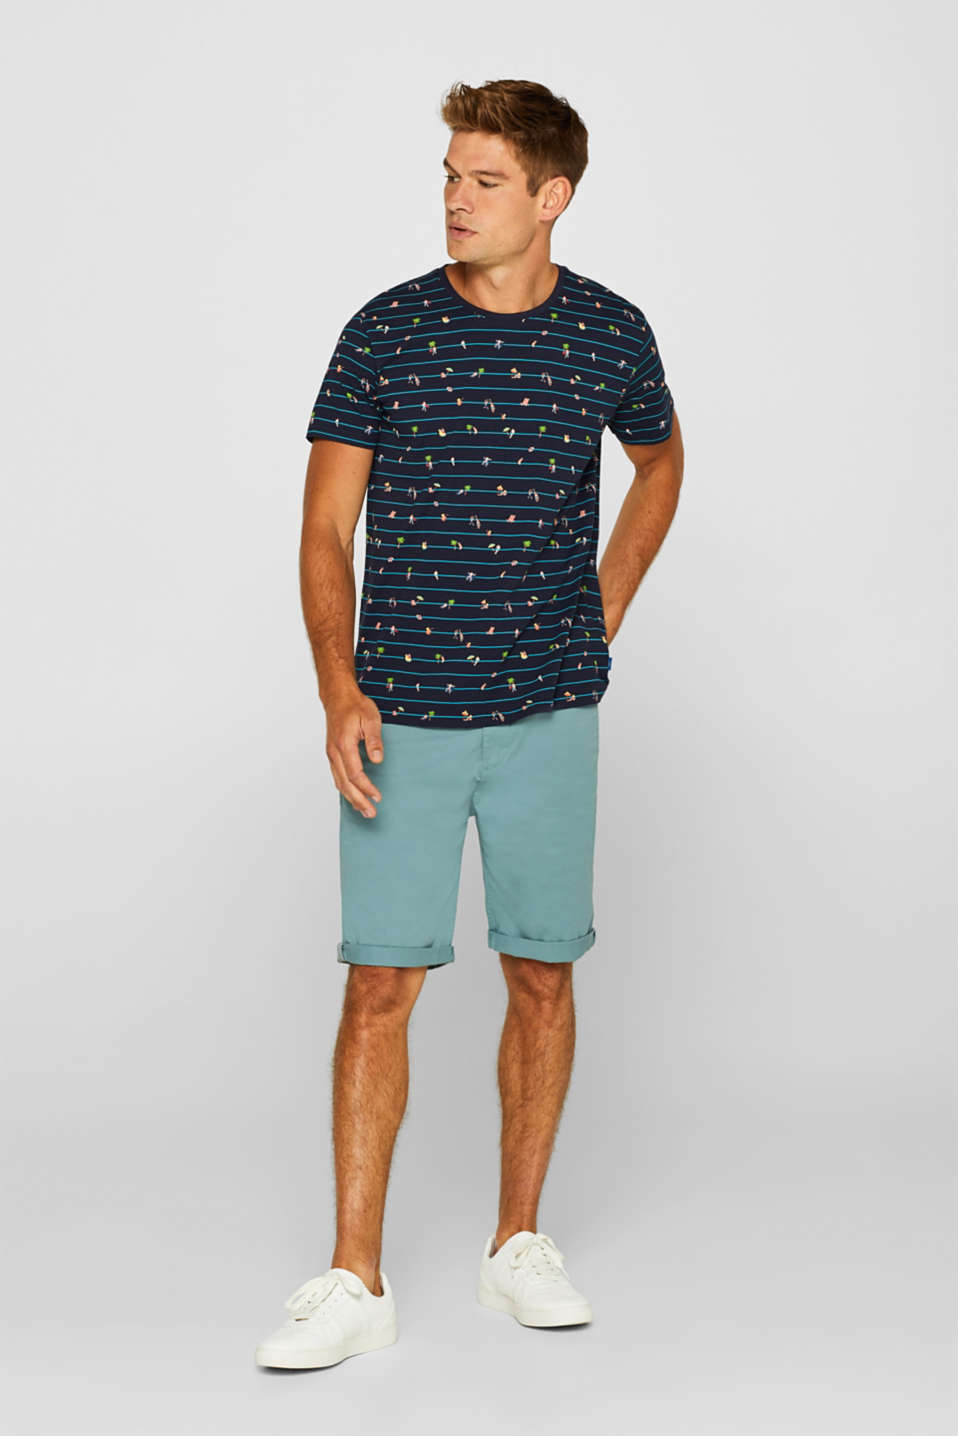 Jersey top with a summer print, 100% cotton, NAVY, detail image number 2